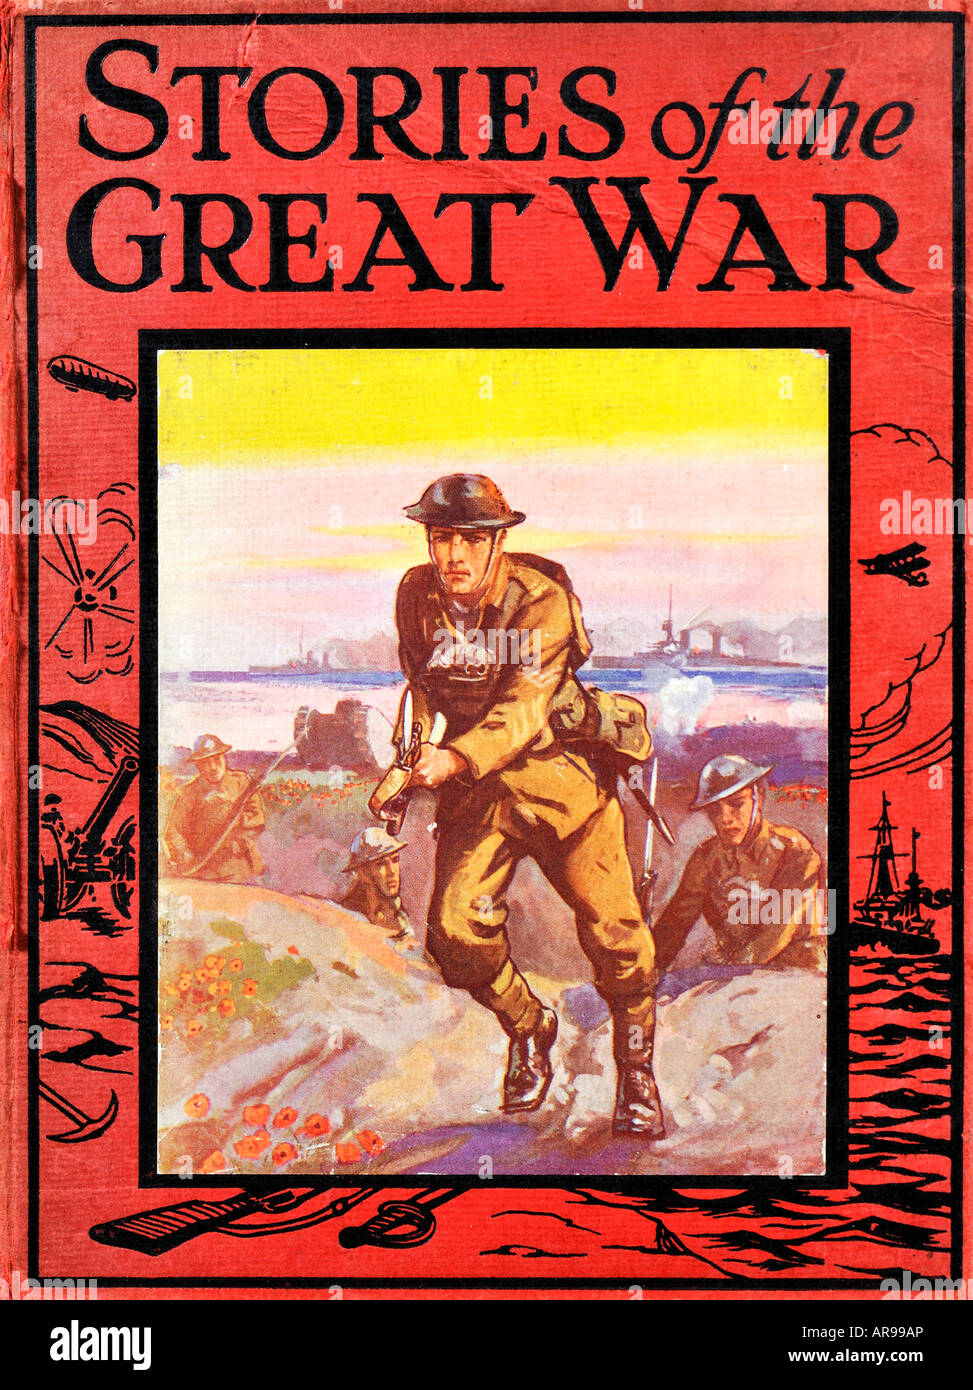 Stories of the Great War Children's book 1920s EDITORIAL USE ONLY - Stock Image